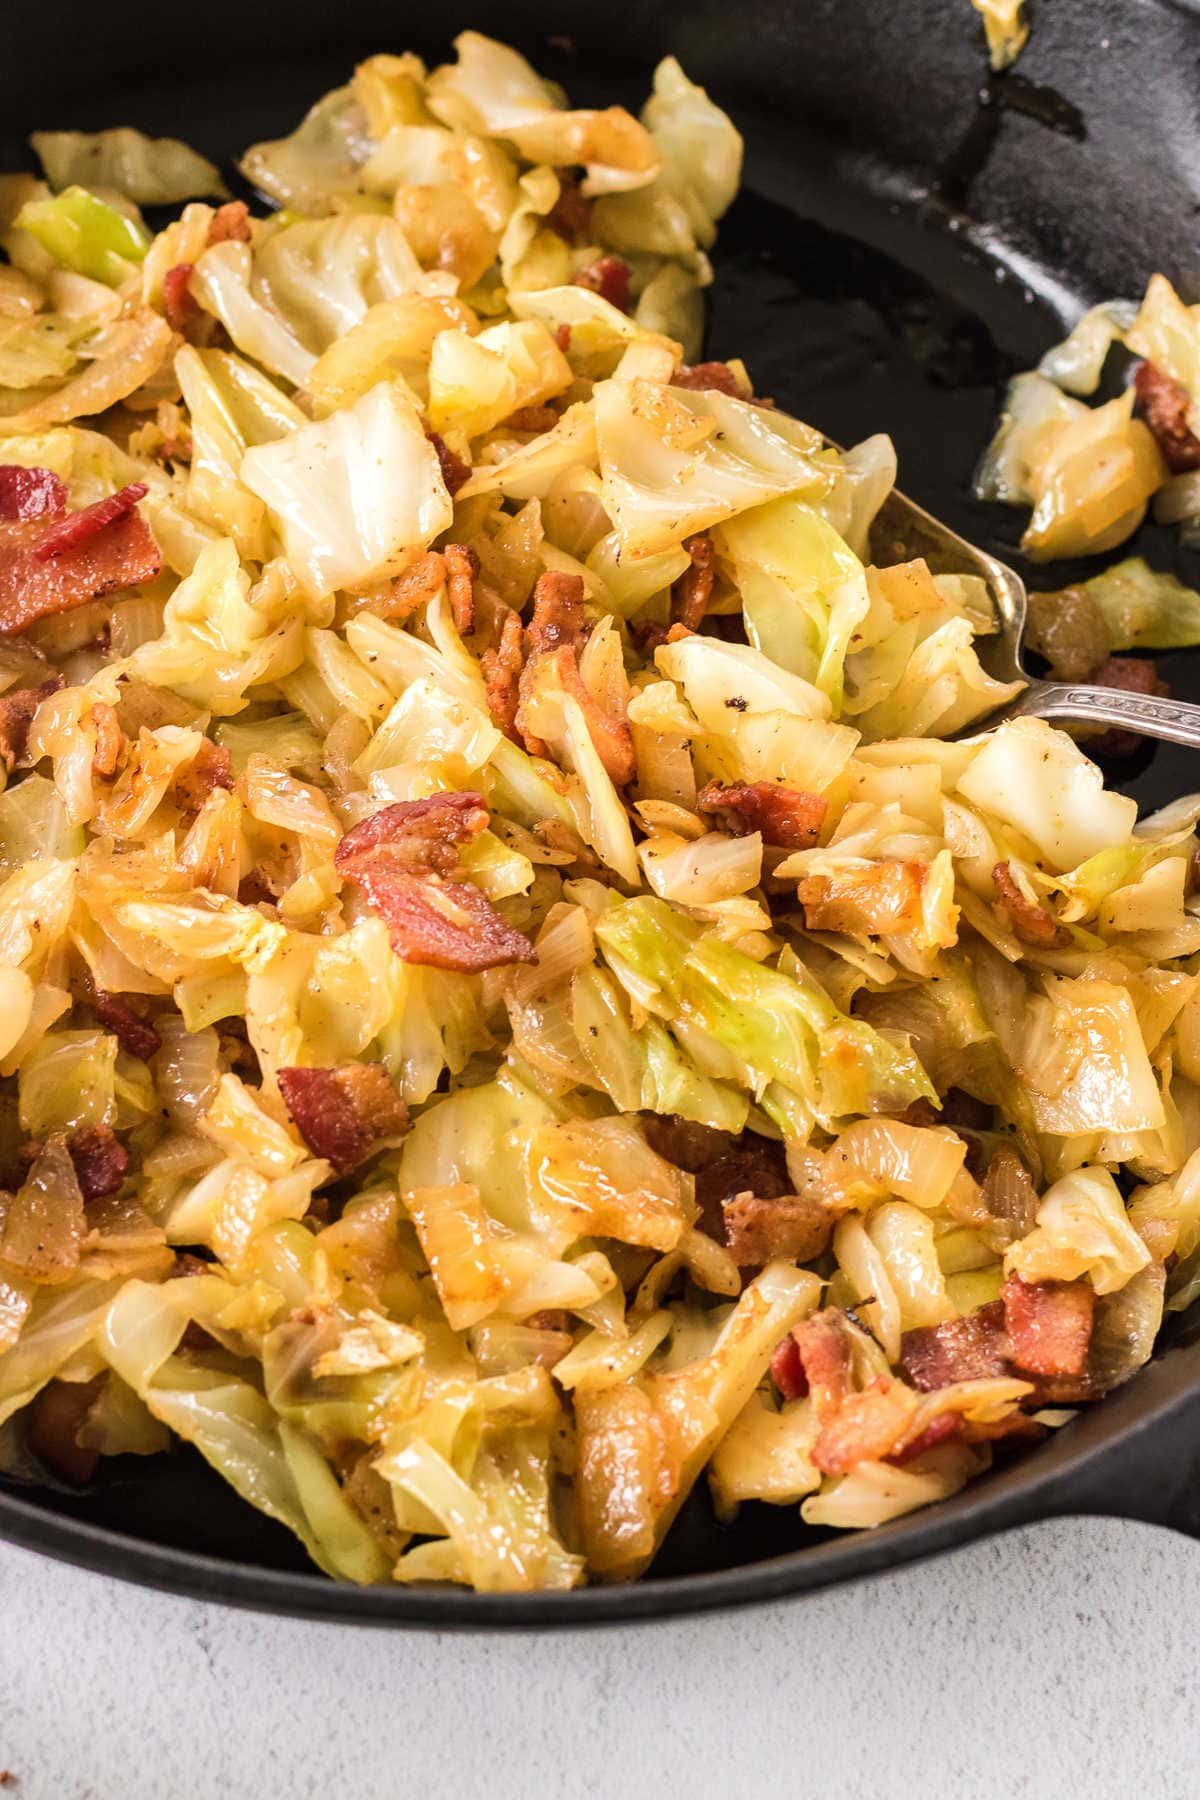 Closeup of this fried cabbage recipe showing the crispy bacon and tender vegetables.